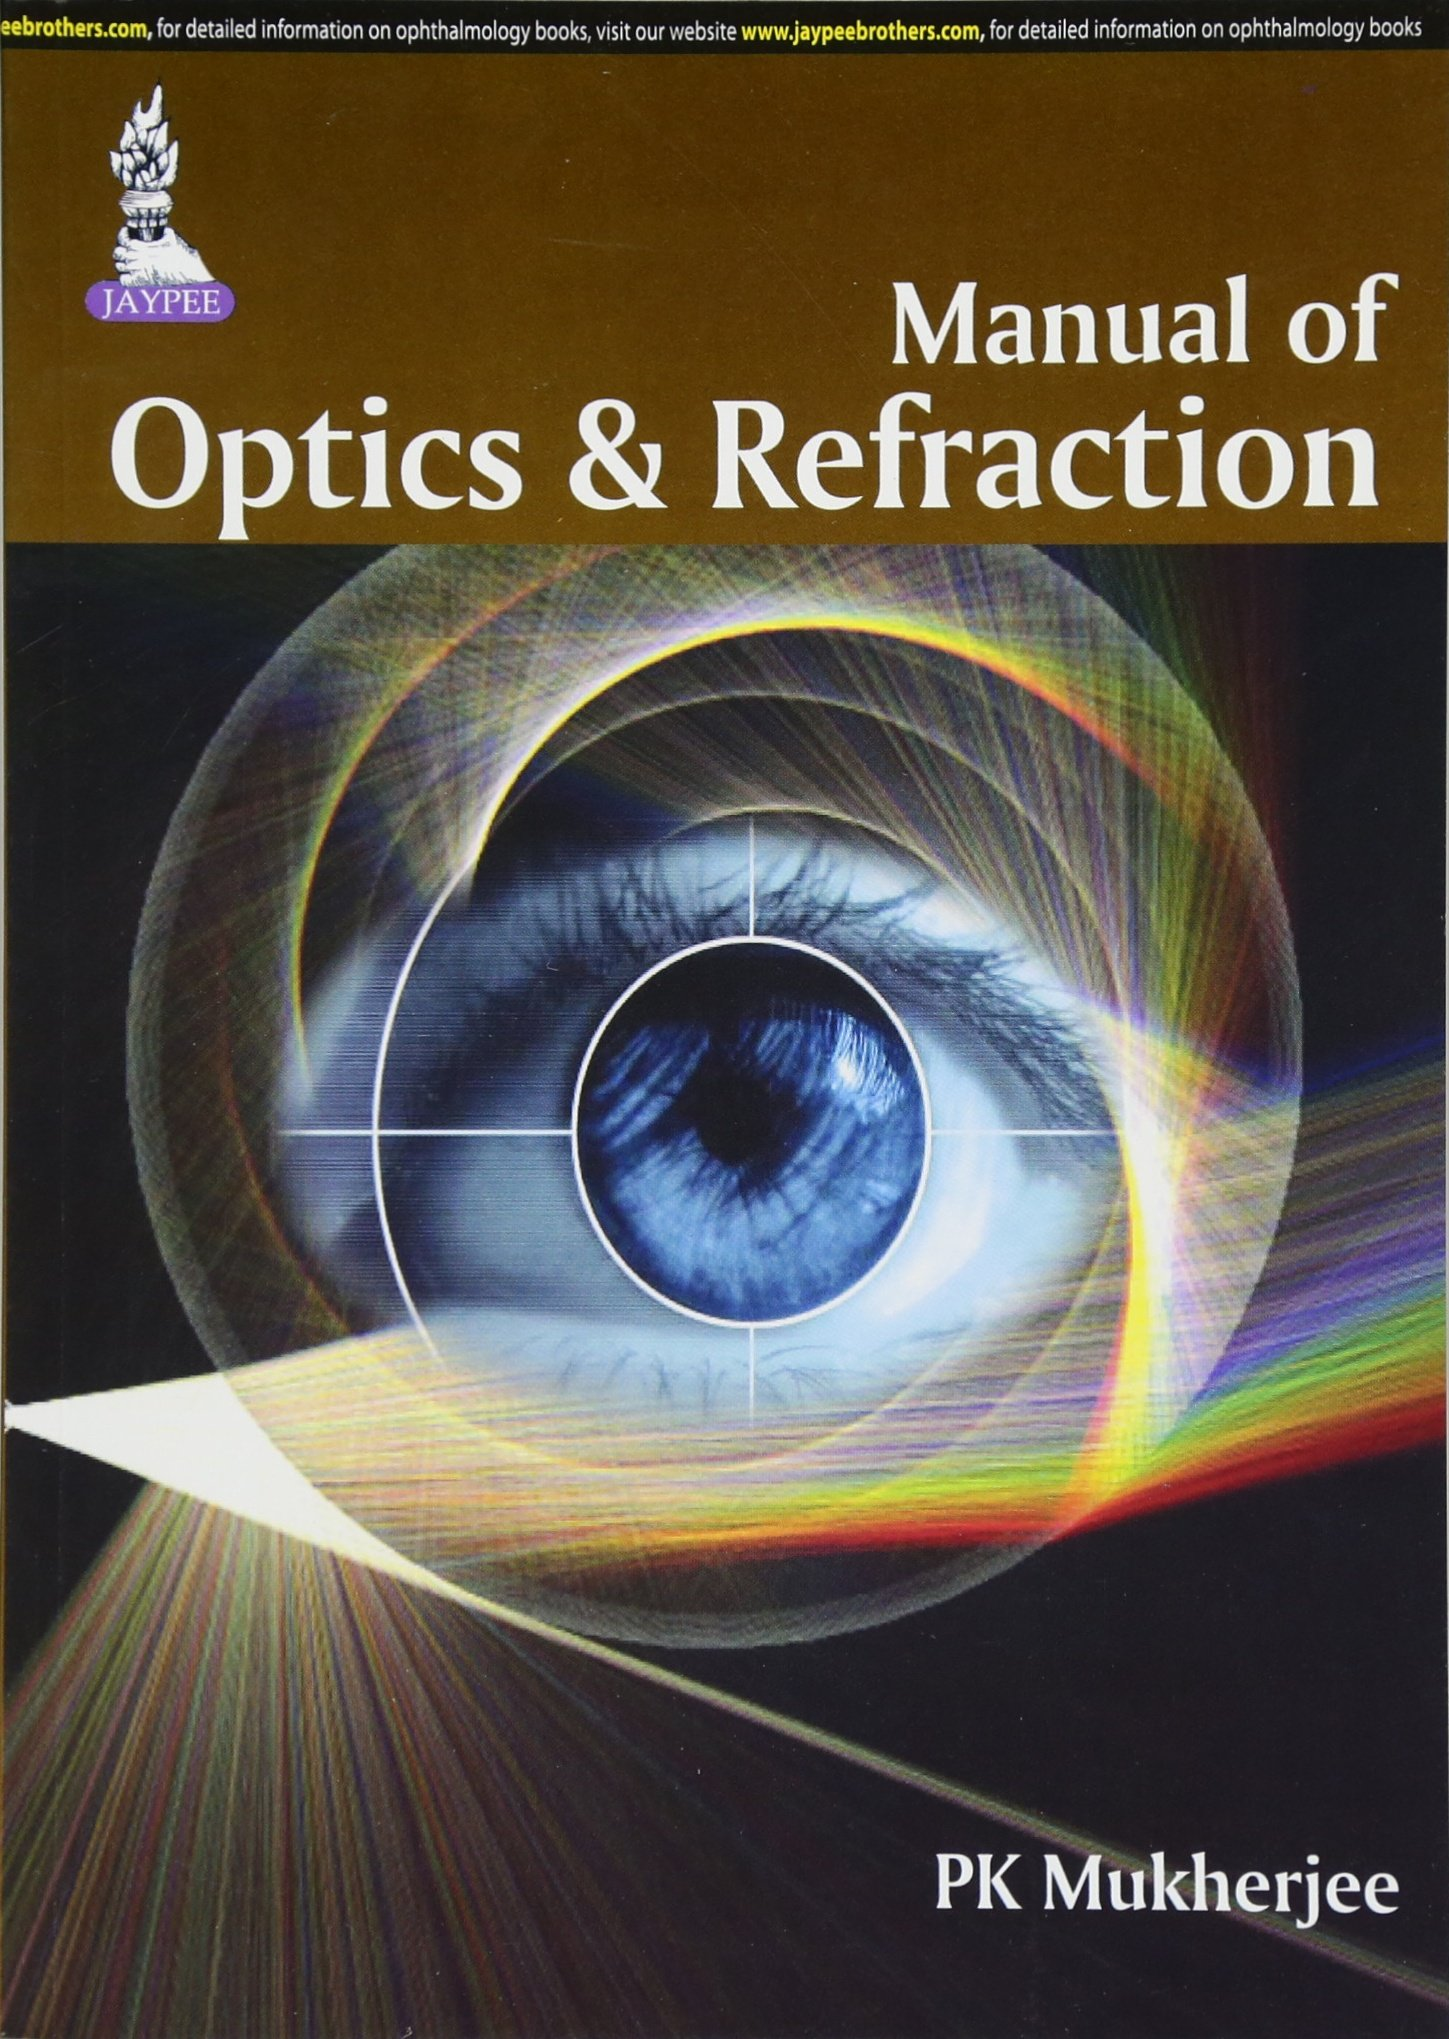 Buy Manual Of Optics & Refraction Book Online at Low Prices in India    Manual Of Optics & Refraction Reviews & Ratings - Amazon.in